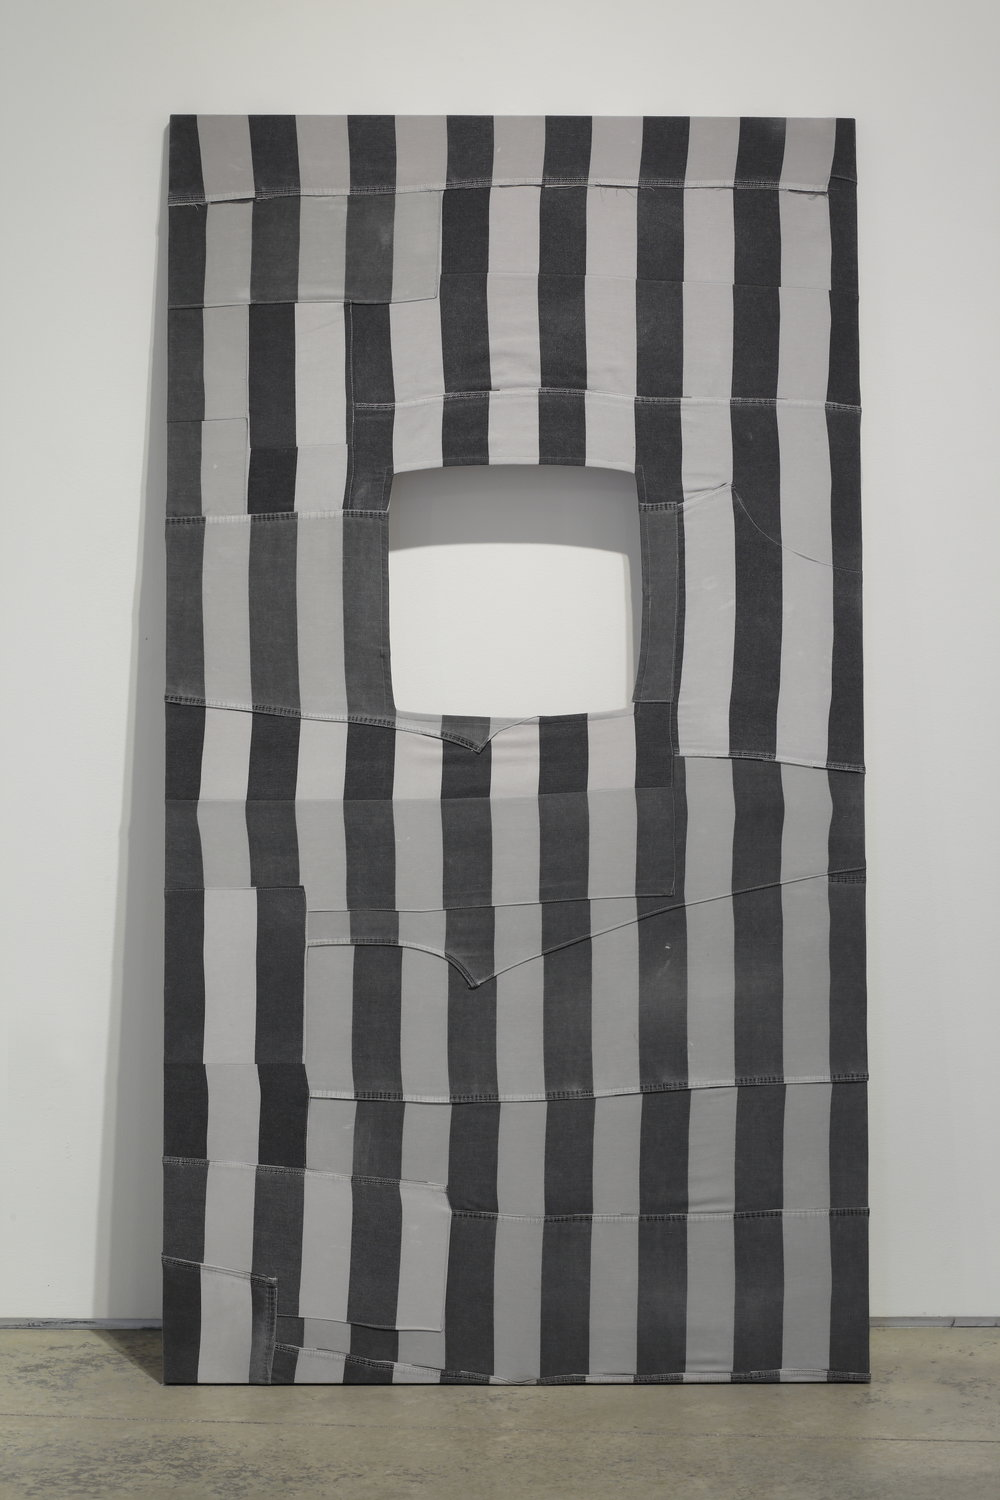 Hank Willis Thomas,   Every Act is Political…(Buren) , 2016  quilt made out of decommissioned prison uniforms  image courtesy of The Visual Arts Center of Richmond